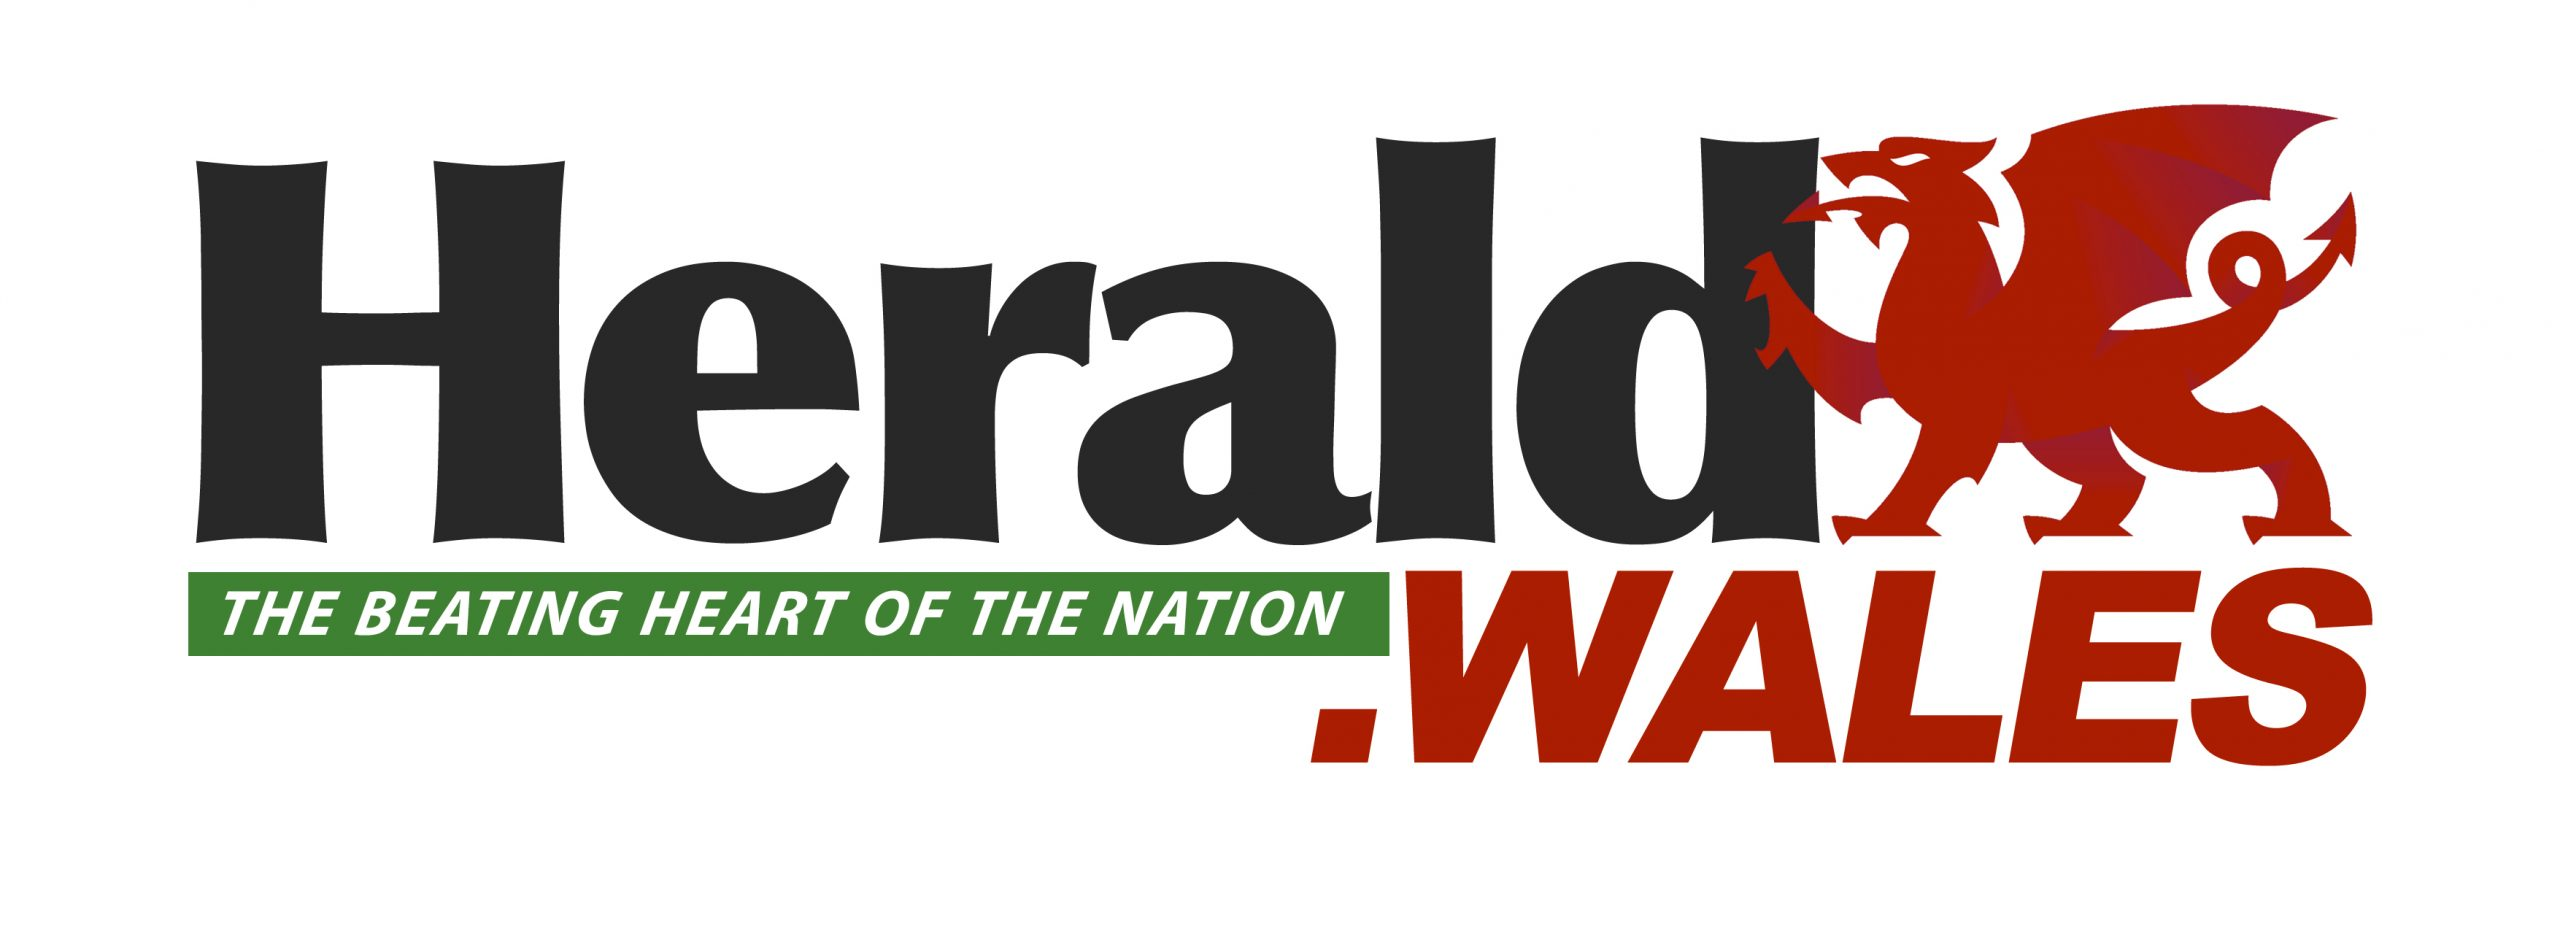 Herald Wales